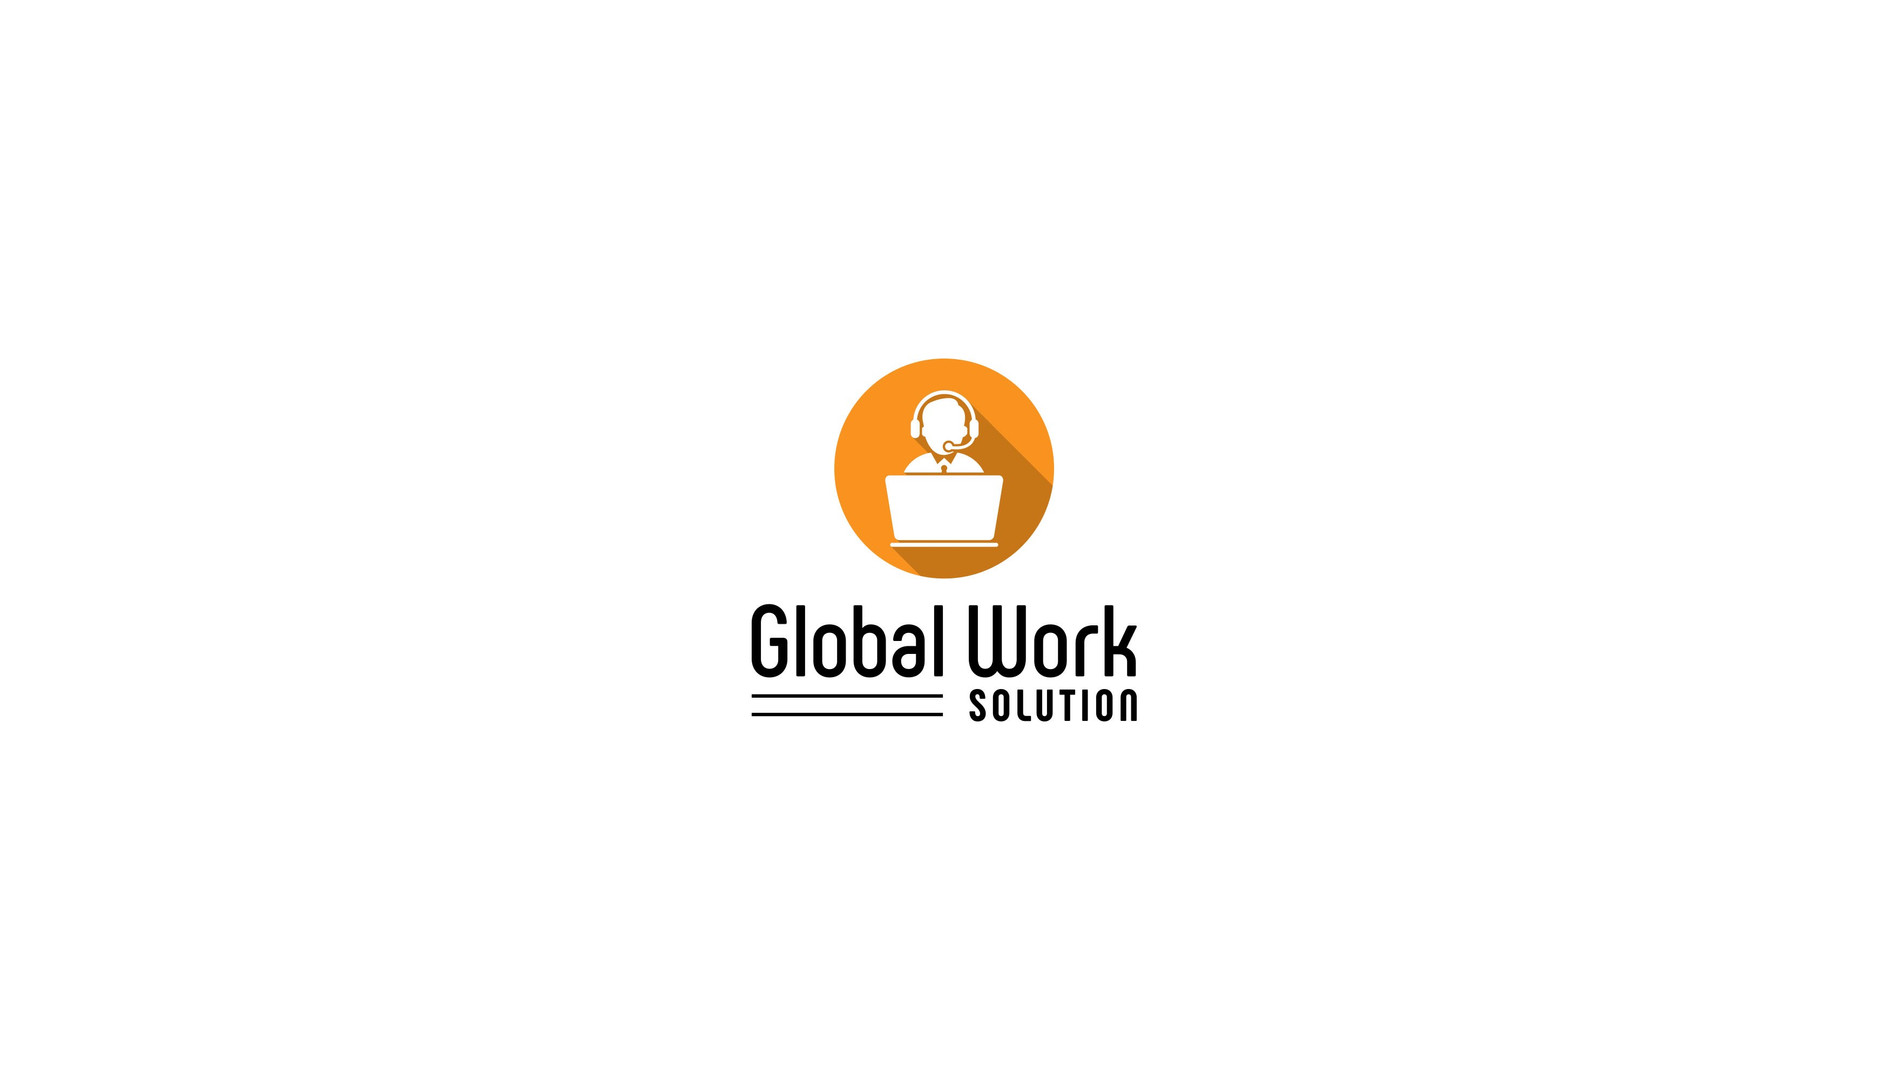 Global Work Solution